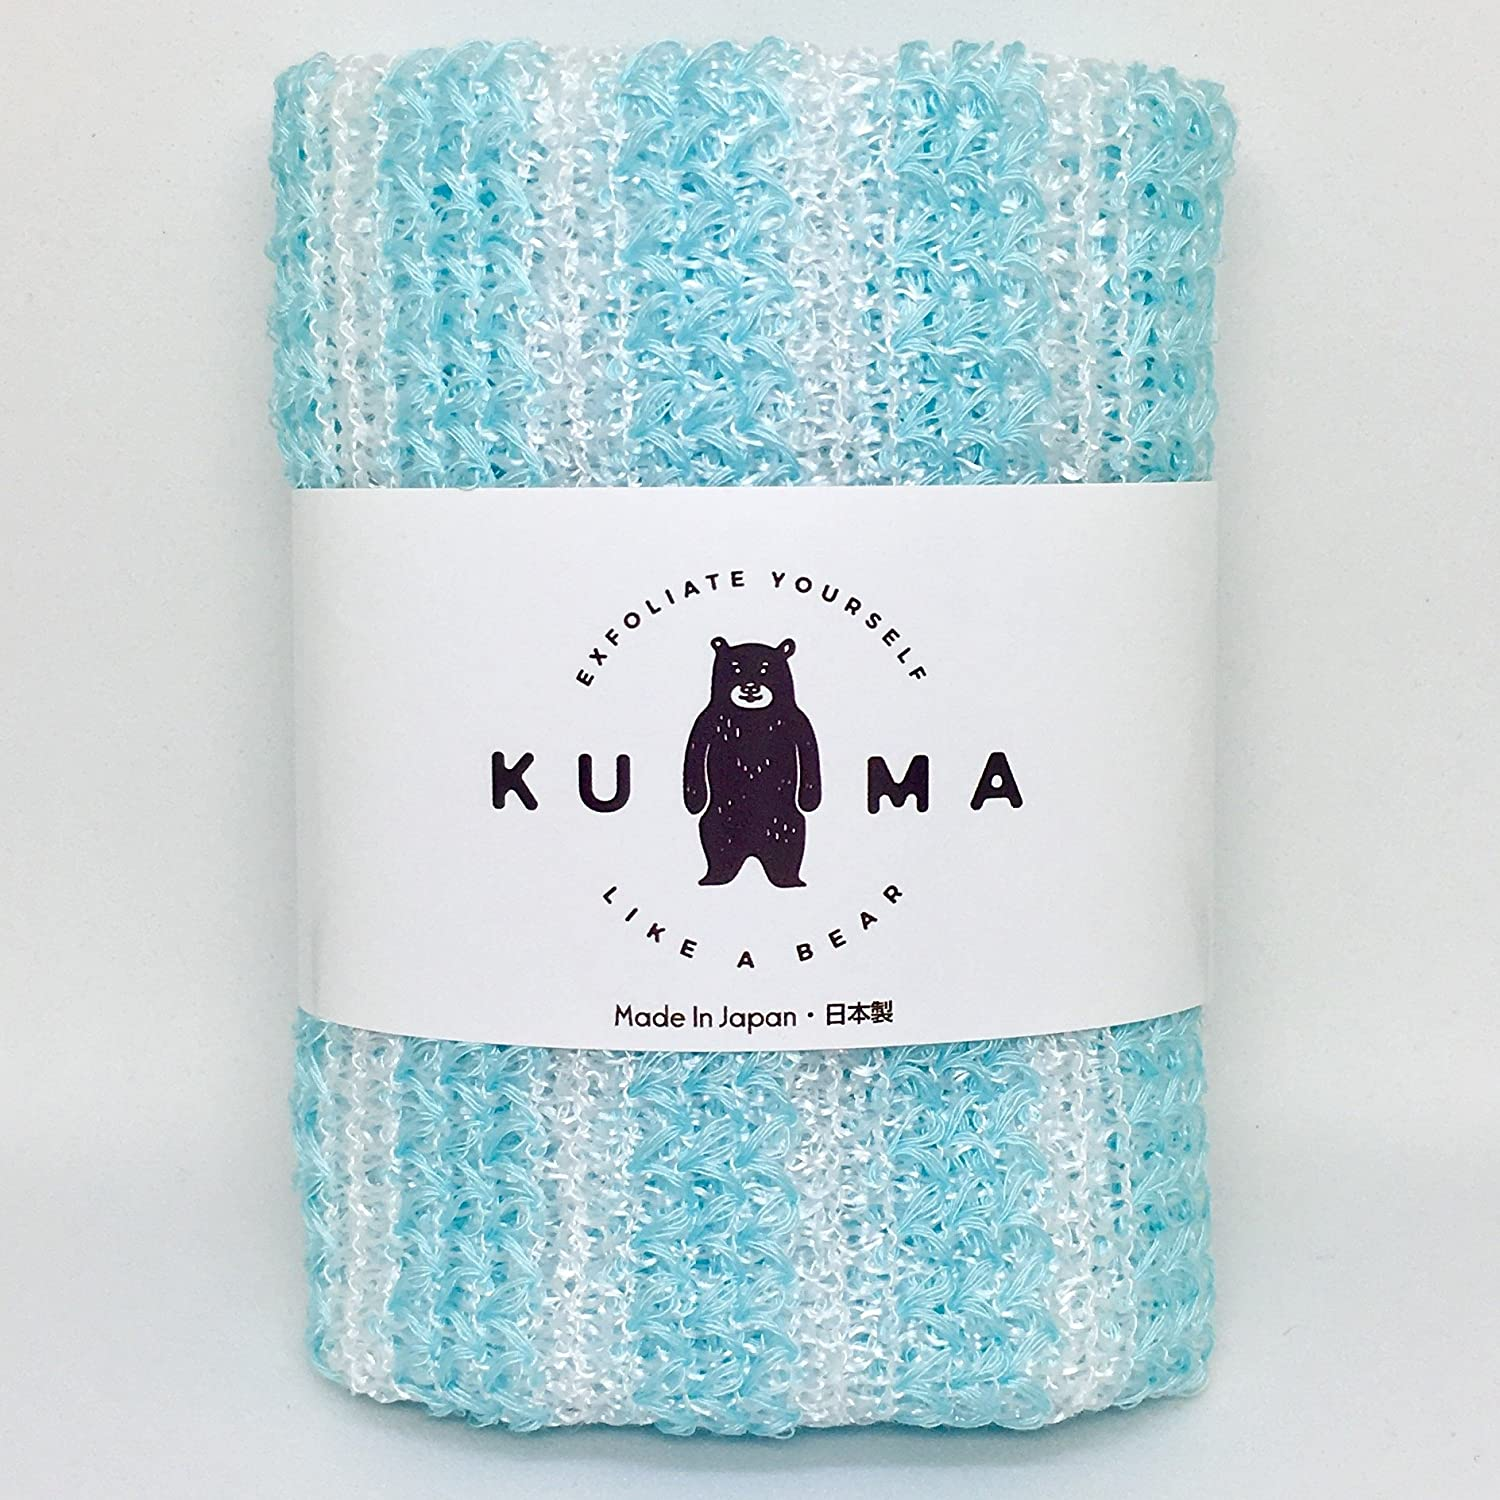 Gentle Exfoliating Washcloth & Towel - from KUMA • Organic & Sustainable • Designed & Crafted in Japan • [Sky Blue]